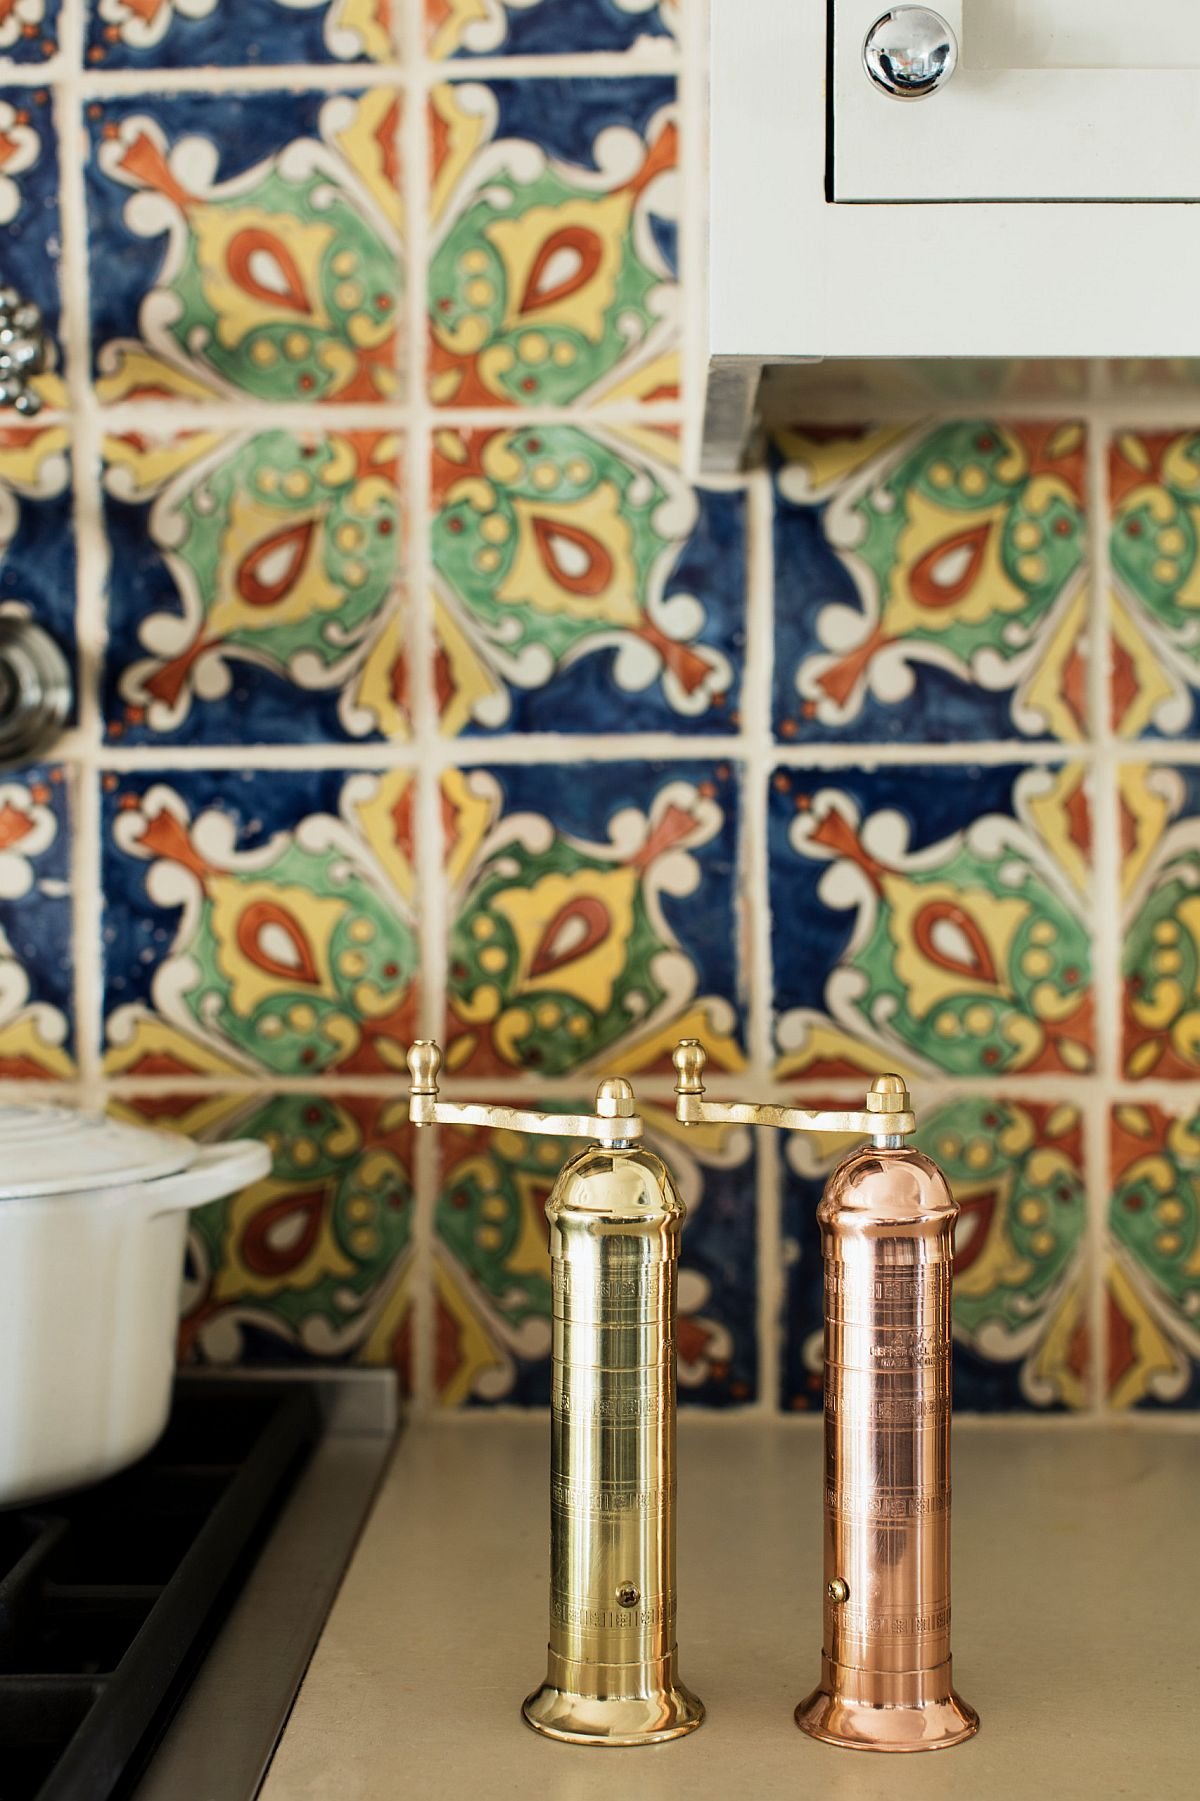 Closer-look-at-the-colorful-tiled-backsplash-of-the-renovated-kitchen-53508